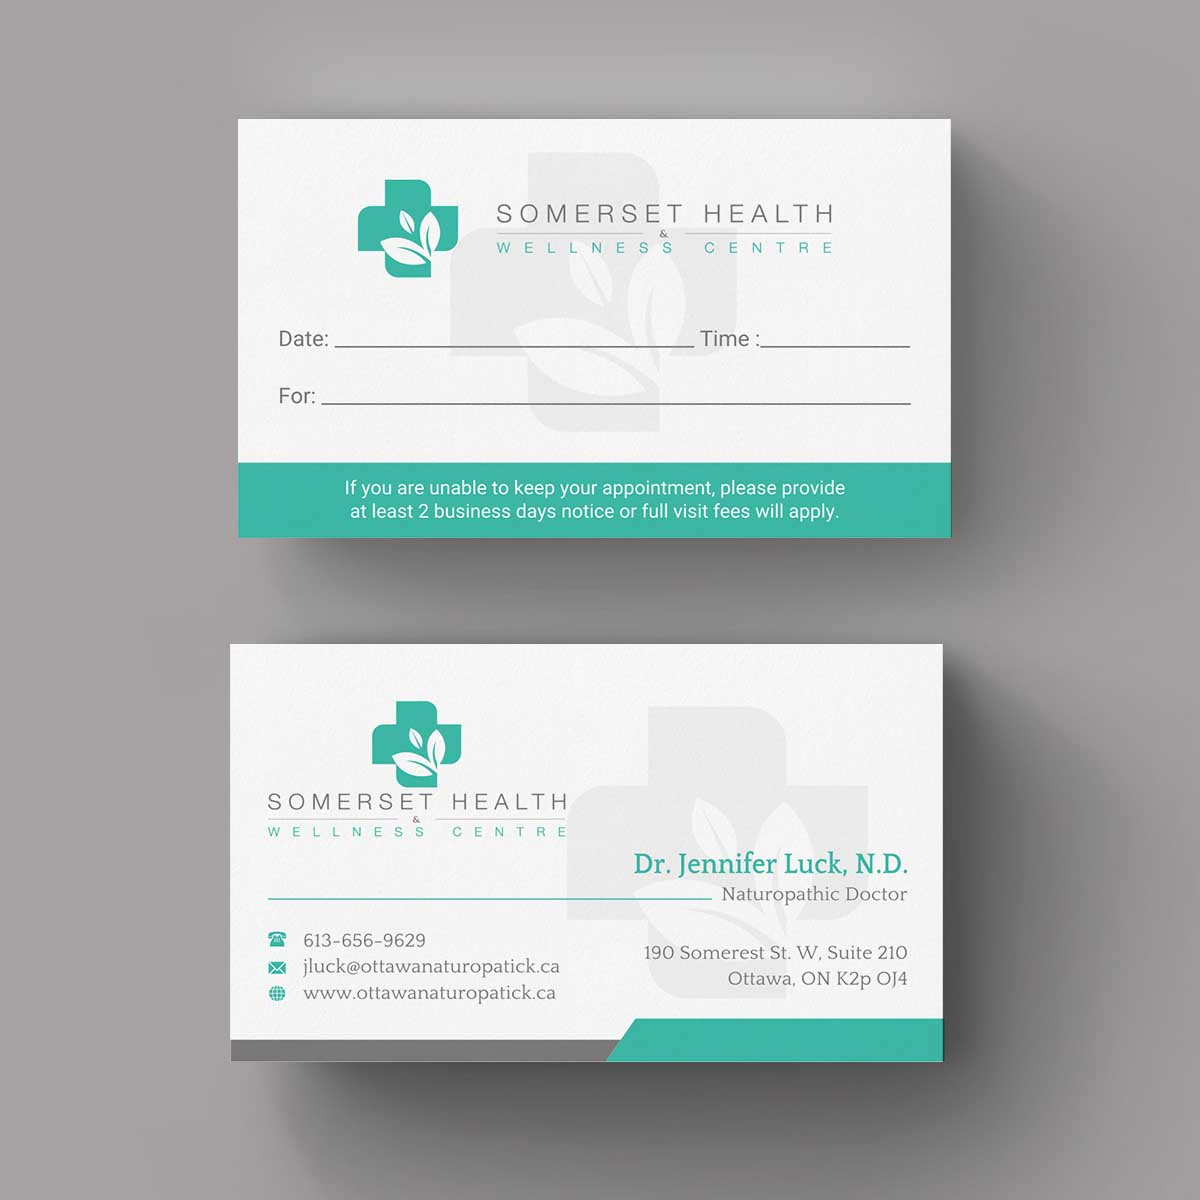 Serious upmarket health and wellness business card design for business card design by indianashok for somerset health wellness centre design 11017264 reheart Image collections